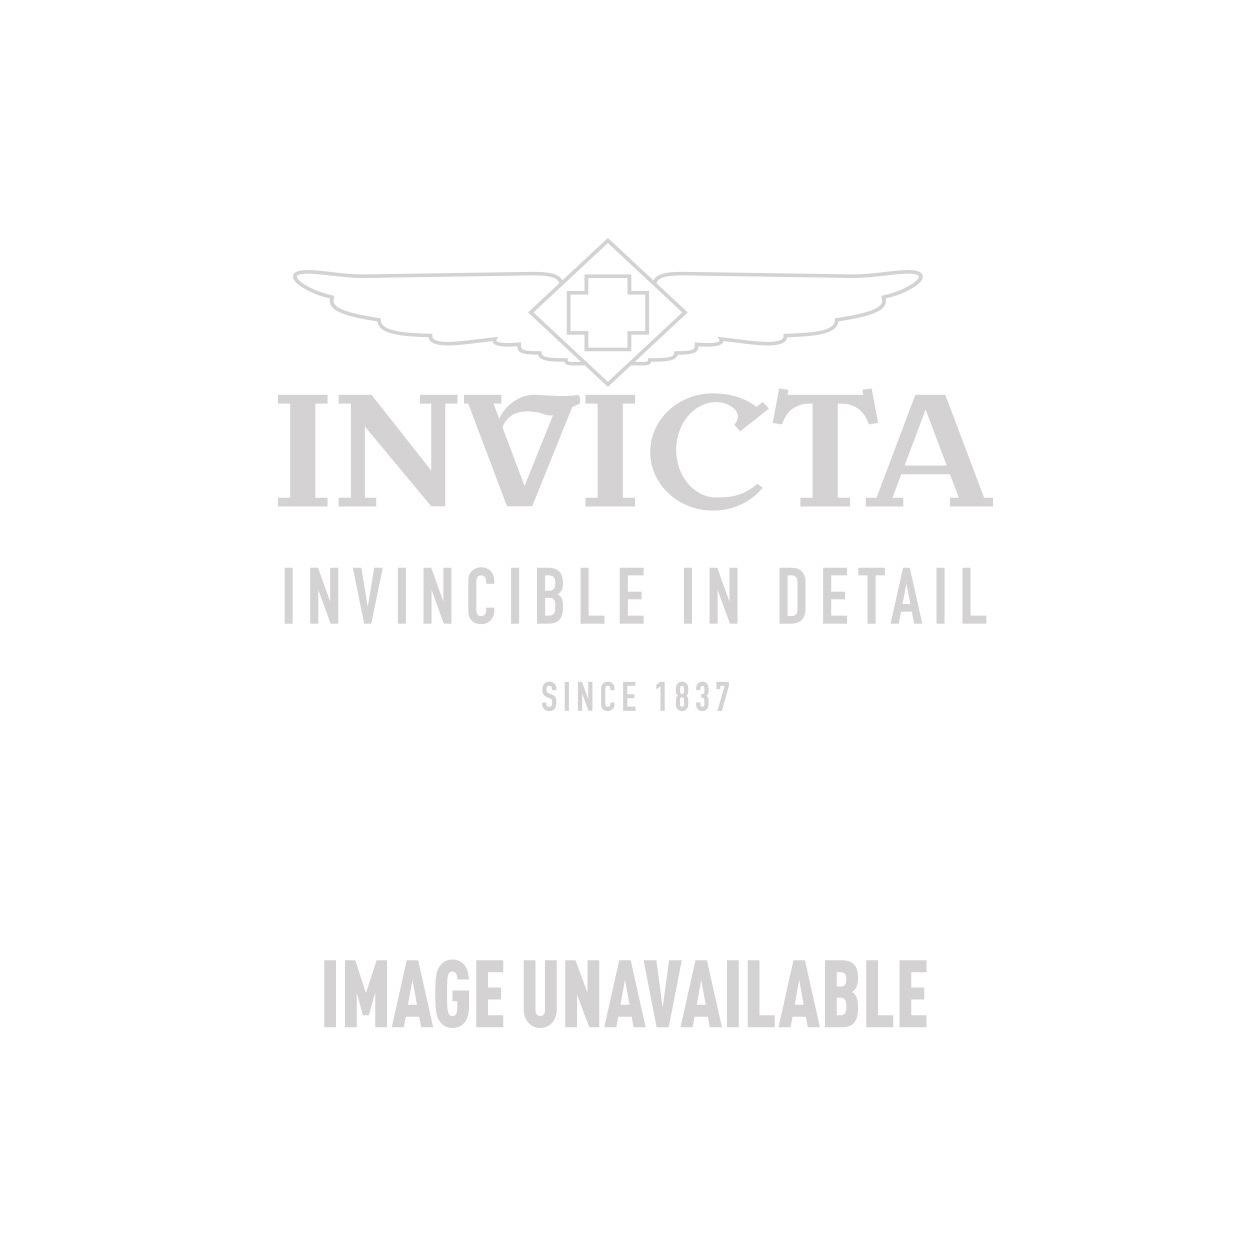 Invicta I-Force Swiss Movement Quartz Watch - Stainless Steel case with Brown tone Leather band - Model 0765